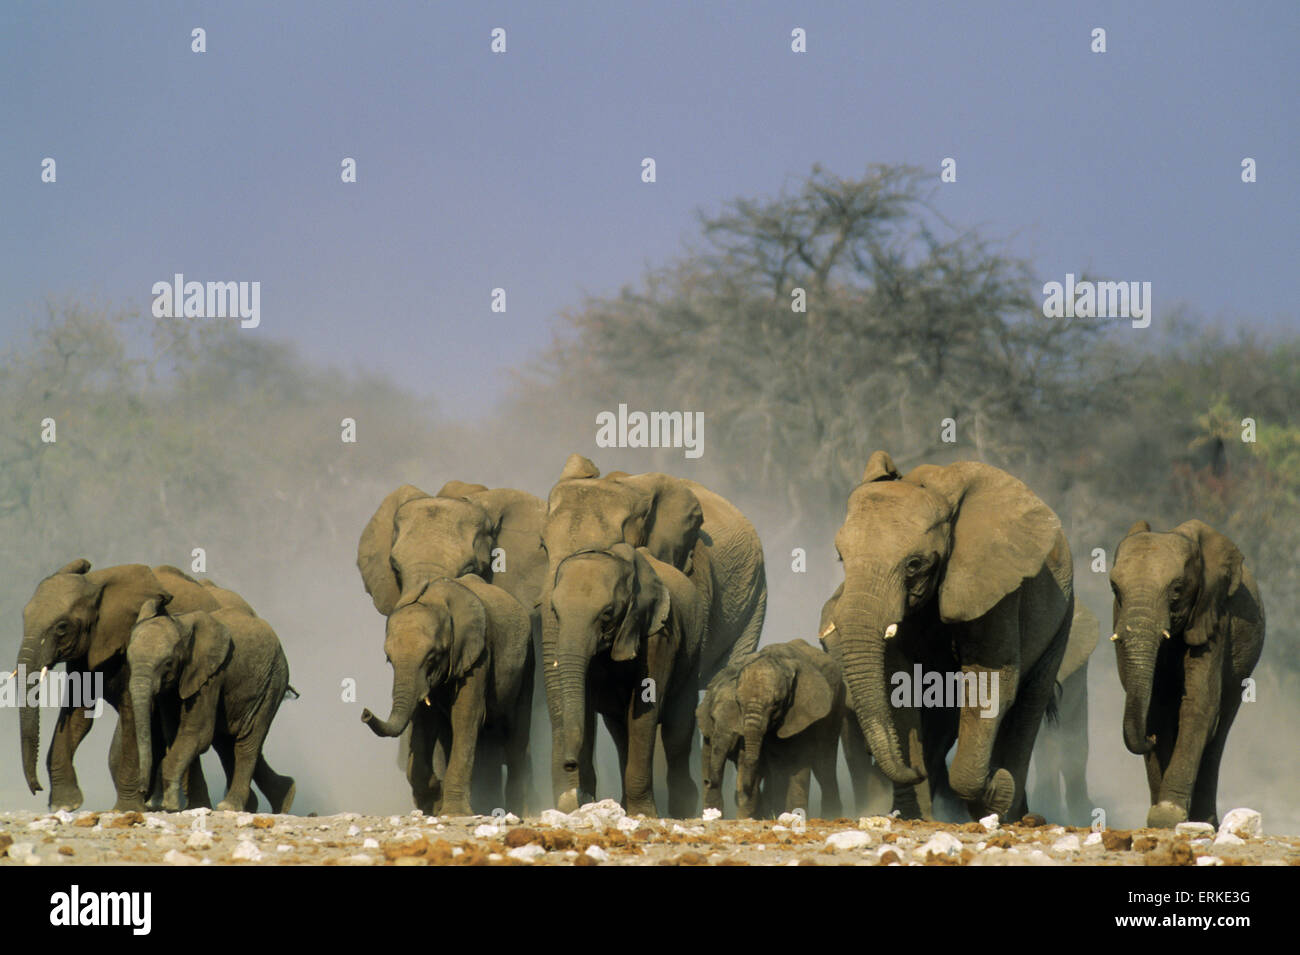 African Elephants (Loxodonta africana), herd rushing towards a waterhole, Etosha National Park, Namibia - Stock Image